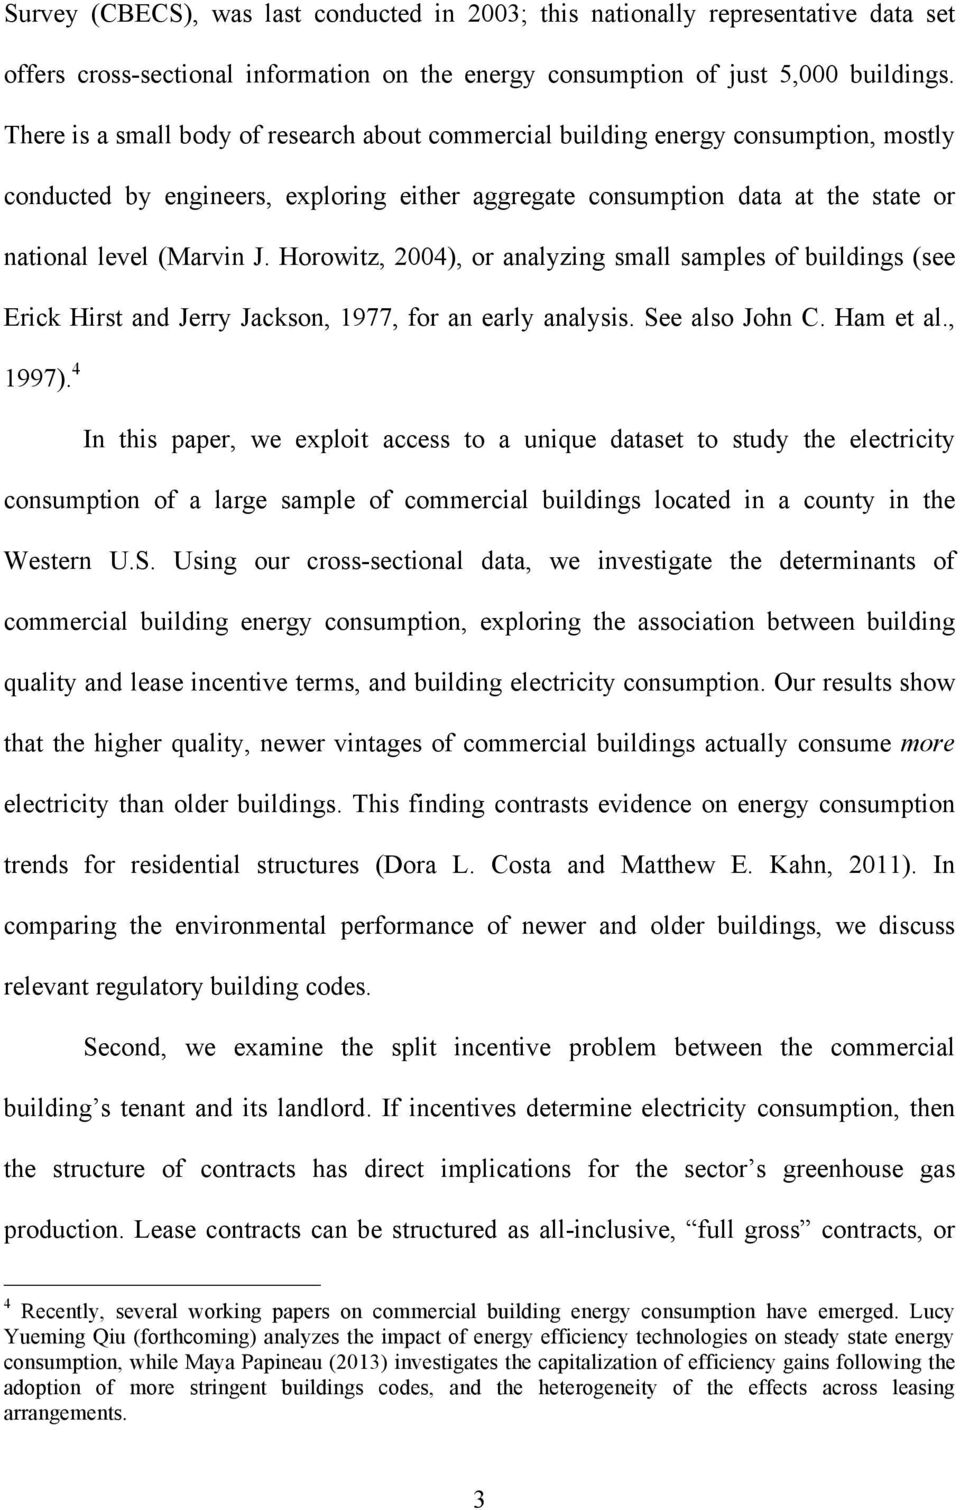 Horowitz, 2004), or analyzing small samples of buildings (see Erick Hirst and Jerry Jackson, 1977, for an early analysis. See also John C. Ham et al., 1997).